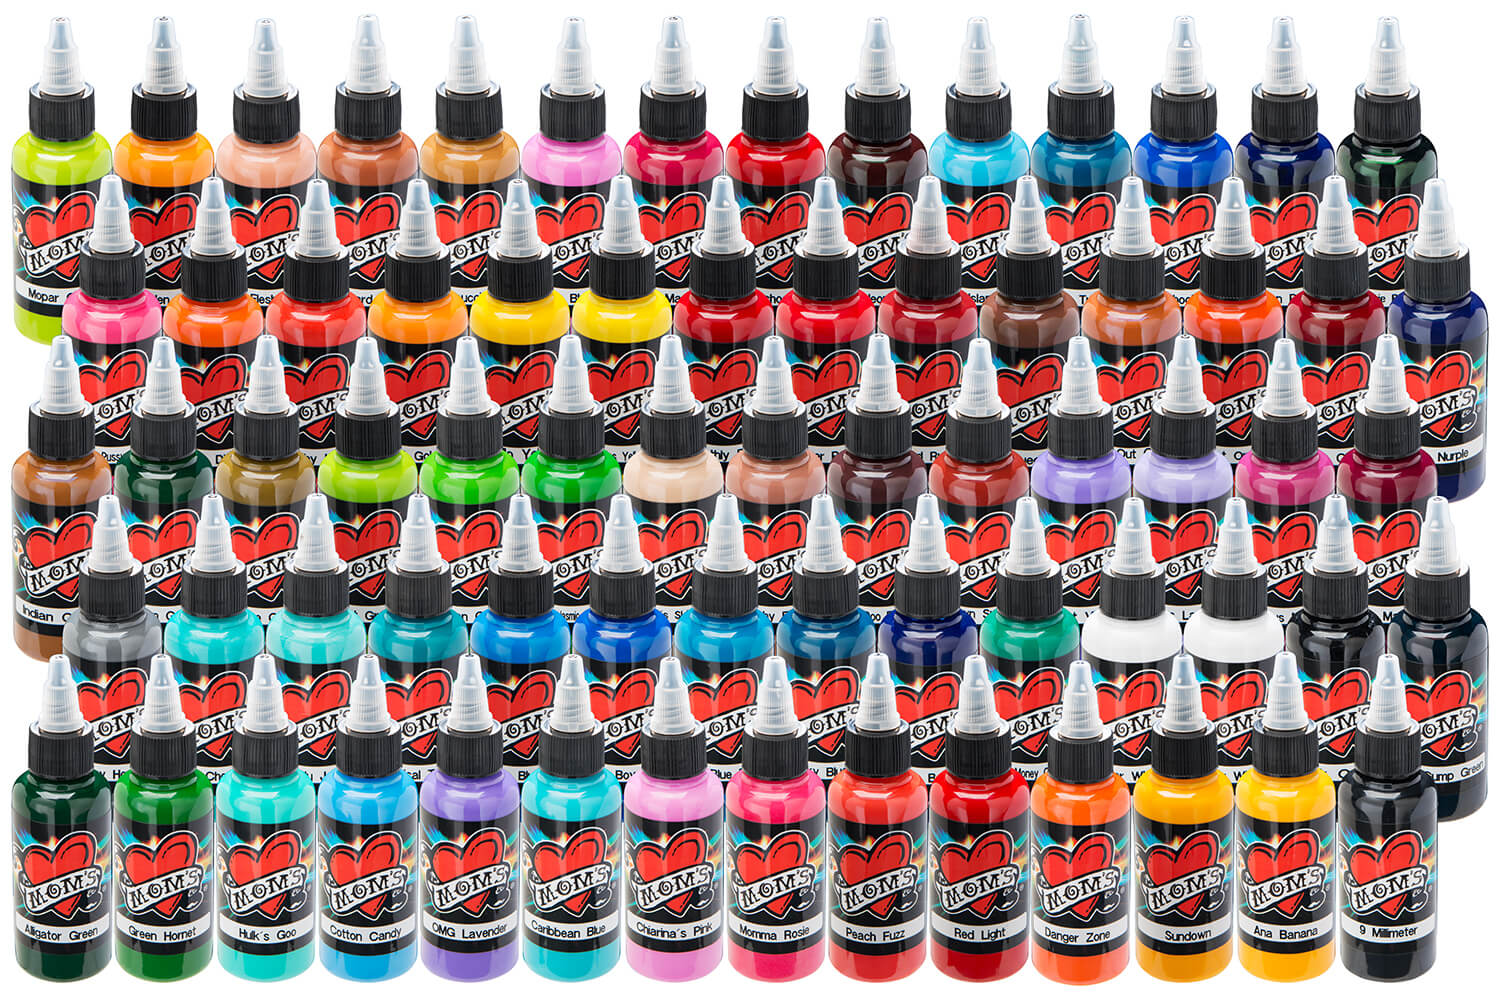 Millennium Mom's Tattoo Ink Review